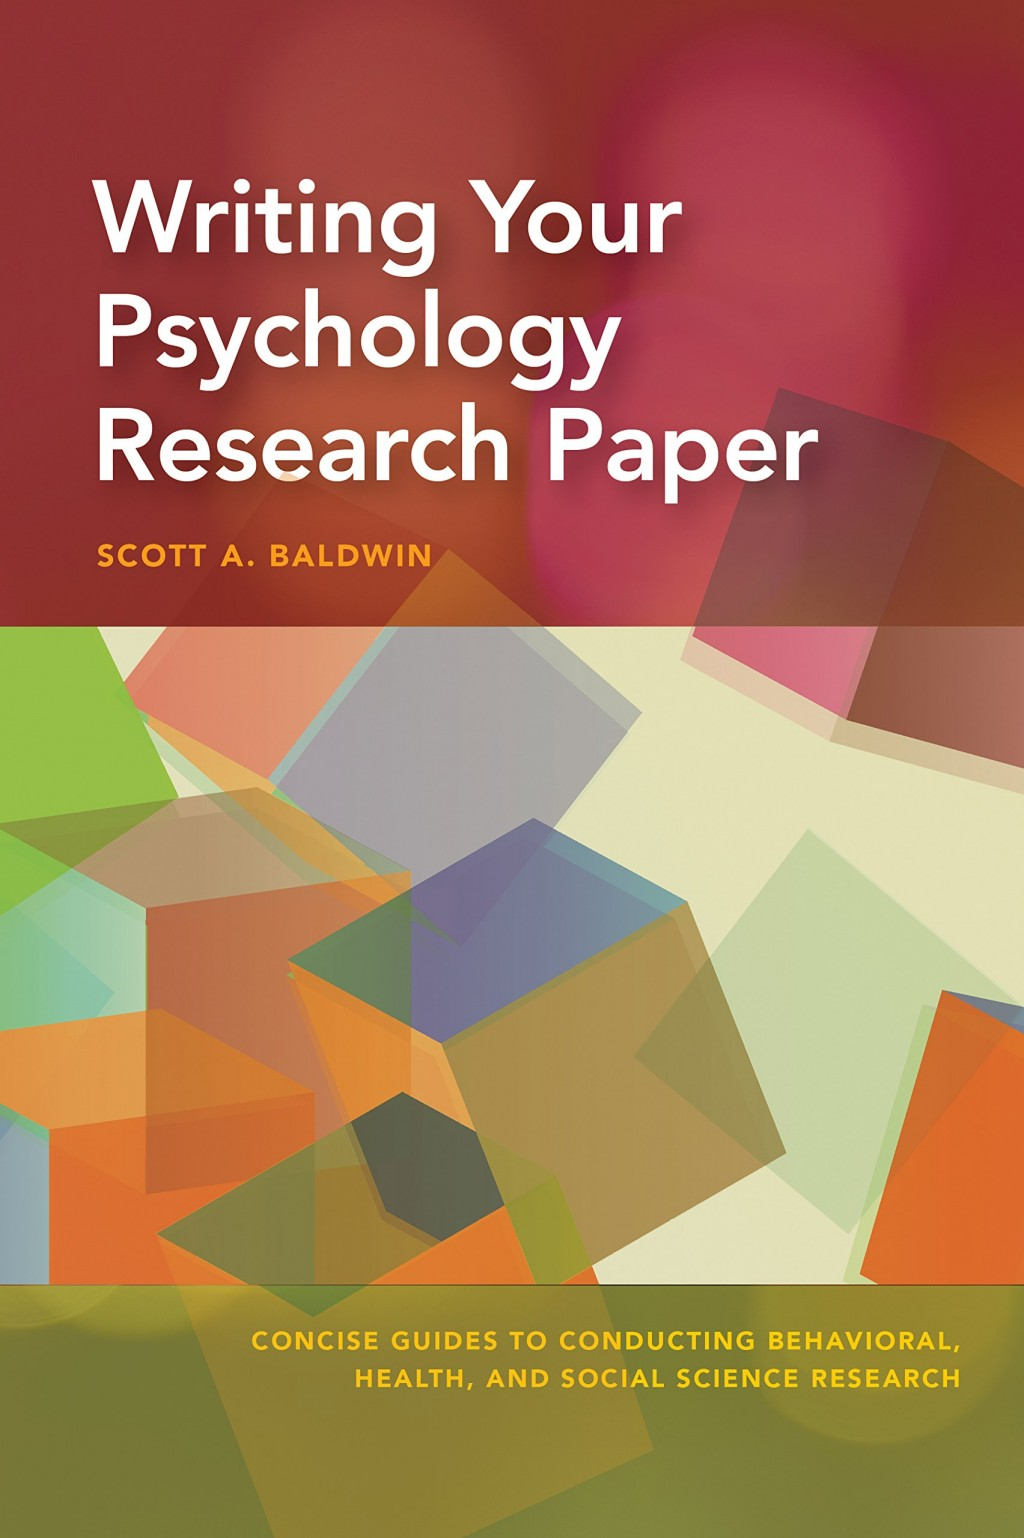 010 Psychology Research Paper On Anxiety Marvelous Topics About Large